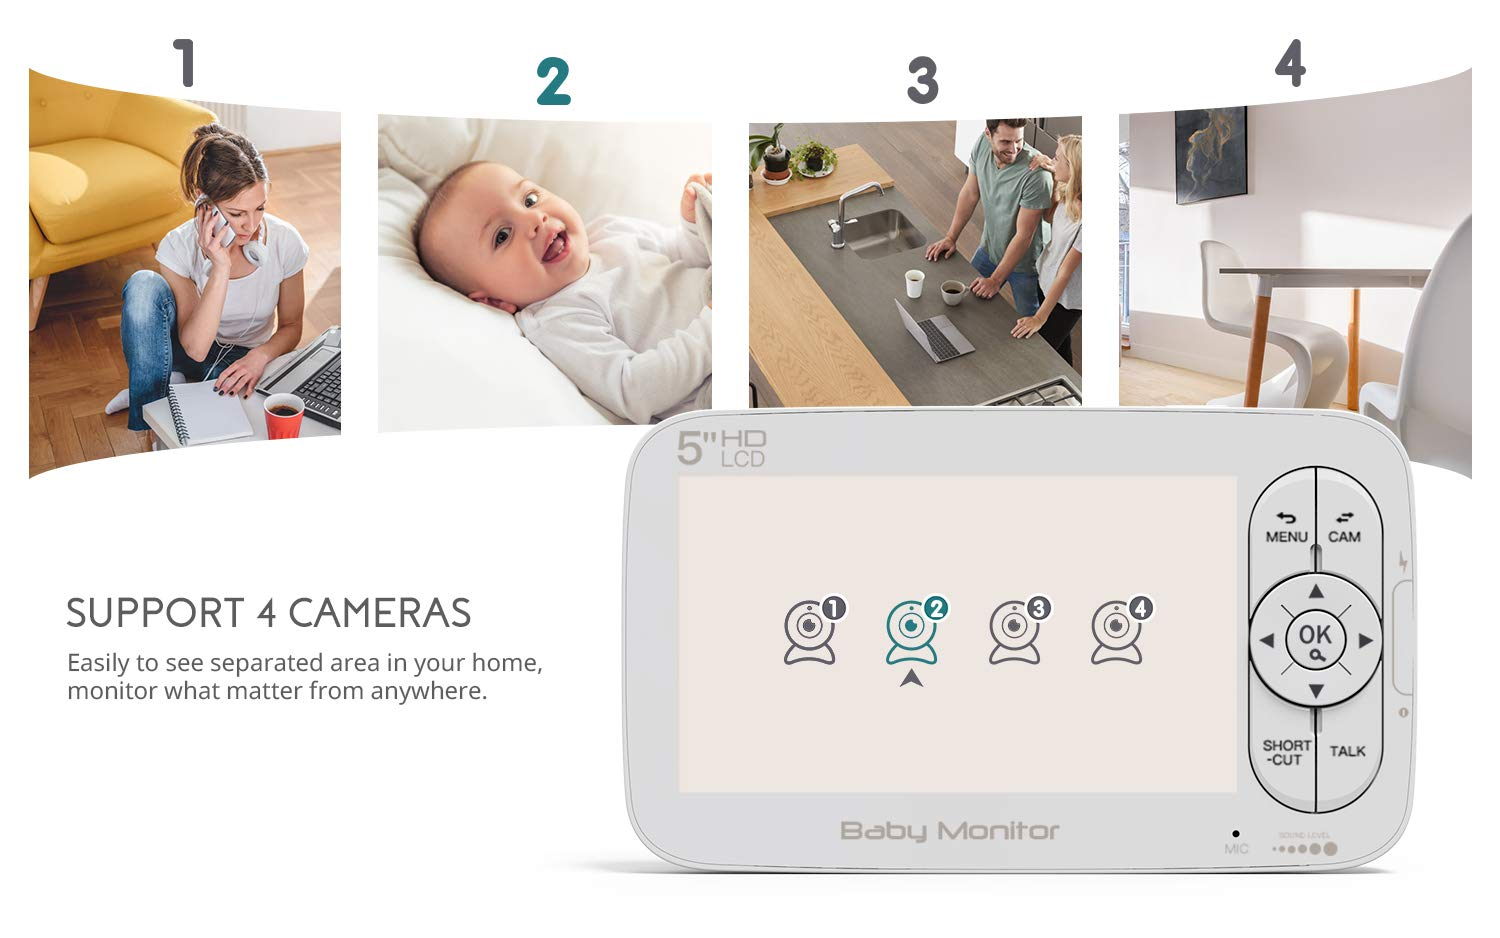 "Baby Monitor, COOAU 5"" Wireless Video Baby Monitor with 1280x720P HD Screen, 2000mAh Rechargeable Battery, Support Two-Way Audio, Infrared Night Vision, Temperature Monitor, 2.4GHz Safe Connection COOAU 👶 5"" 1280*720P HD LCD Screen with 1 Million Pixel Camera: COOAU baby monitor comes with a high quality screen and camera, bring a crystal clear view, no grainy and washed out, even in dark. 👶 Pan Tilt & 2X Zoom-in: You can adjust the angle via 355*120 degree pan/tilt remote control, zoom right in and see if your baby's eyes were opened or closed without any issue. 👶 Infrared Invisible Night Vision: Using 940nm infrared light, effectively protect your baby's eyes. Up to 5 meters night vision viewing distance, pick up images of your baby in dark or low light conditions. 7"